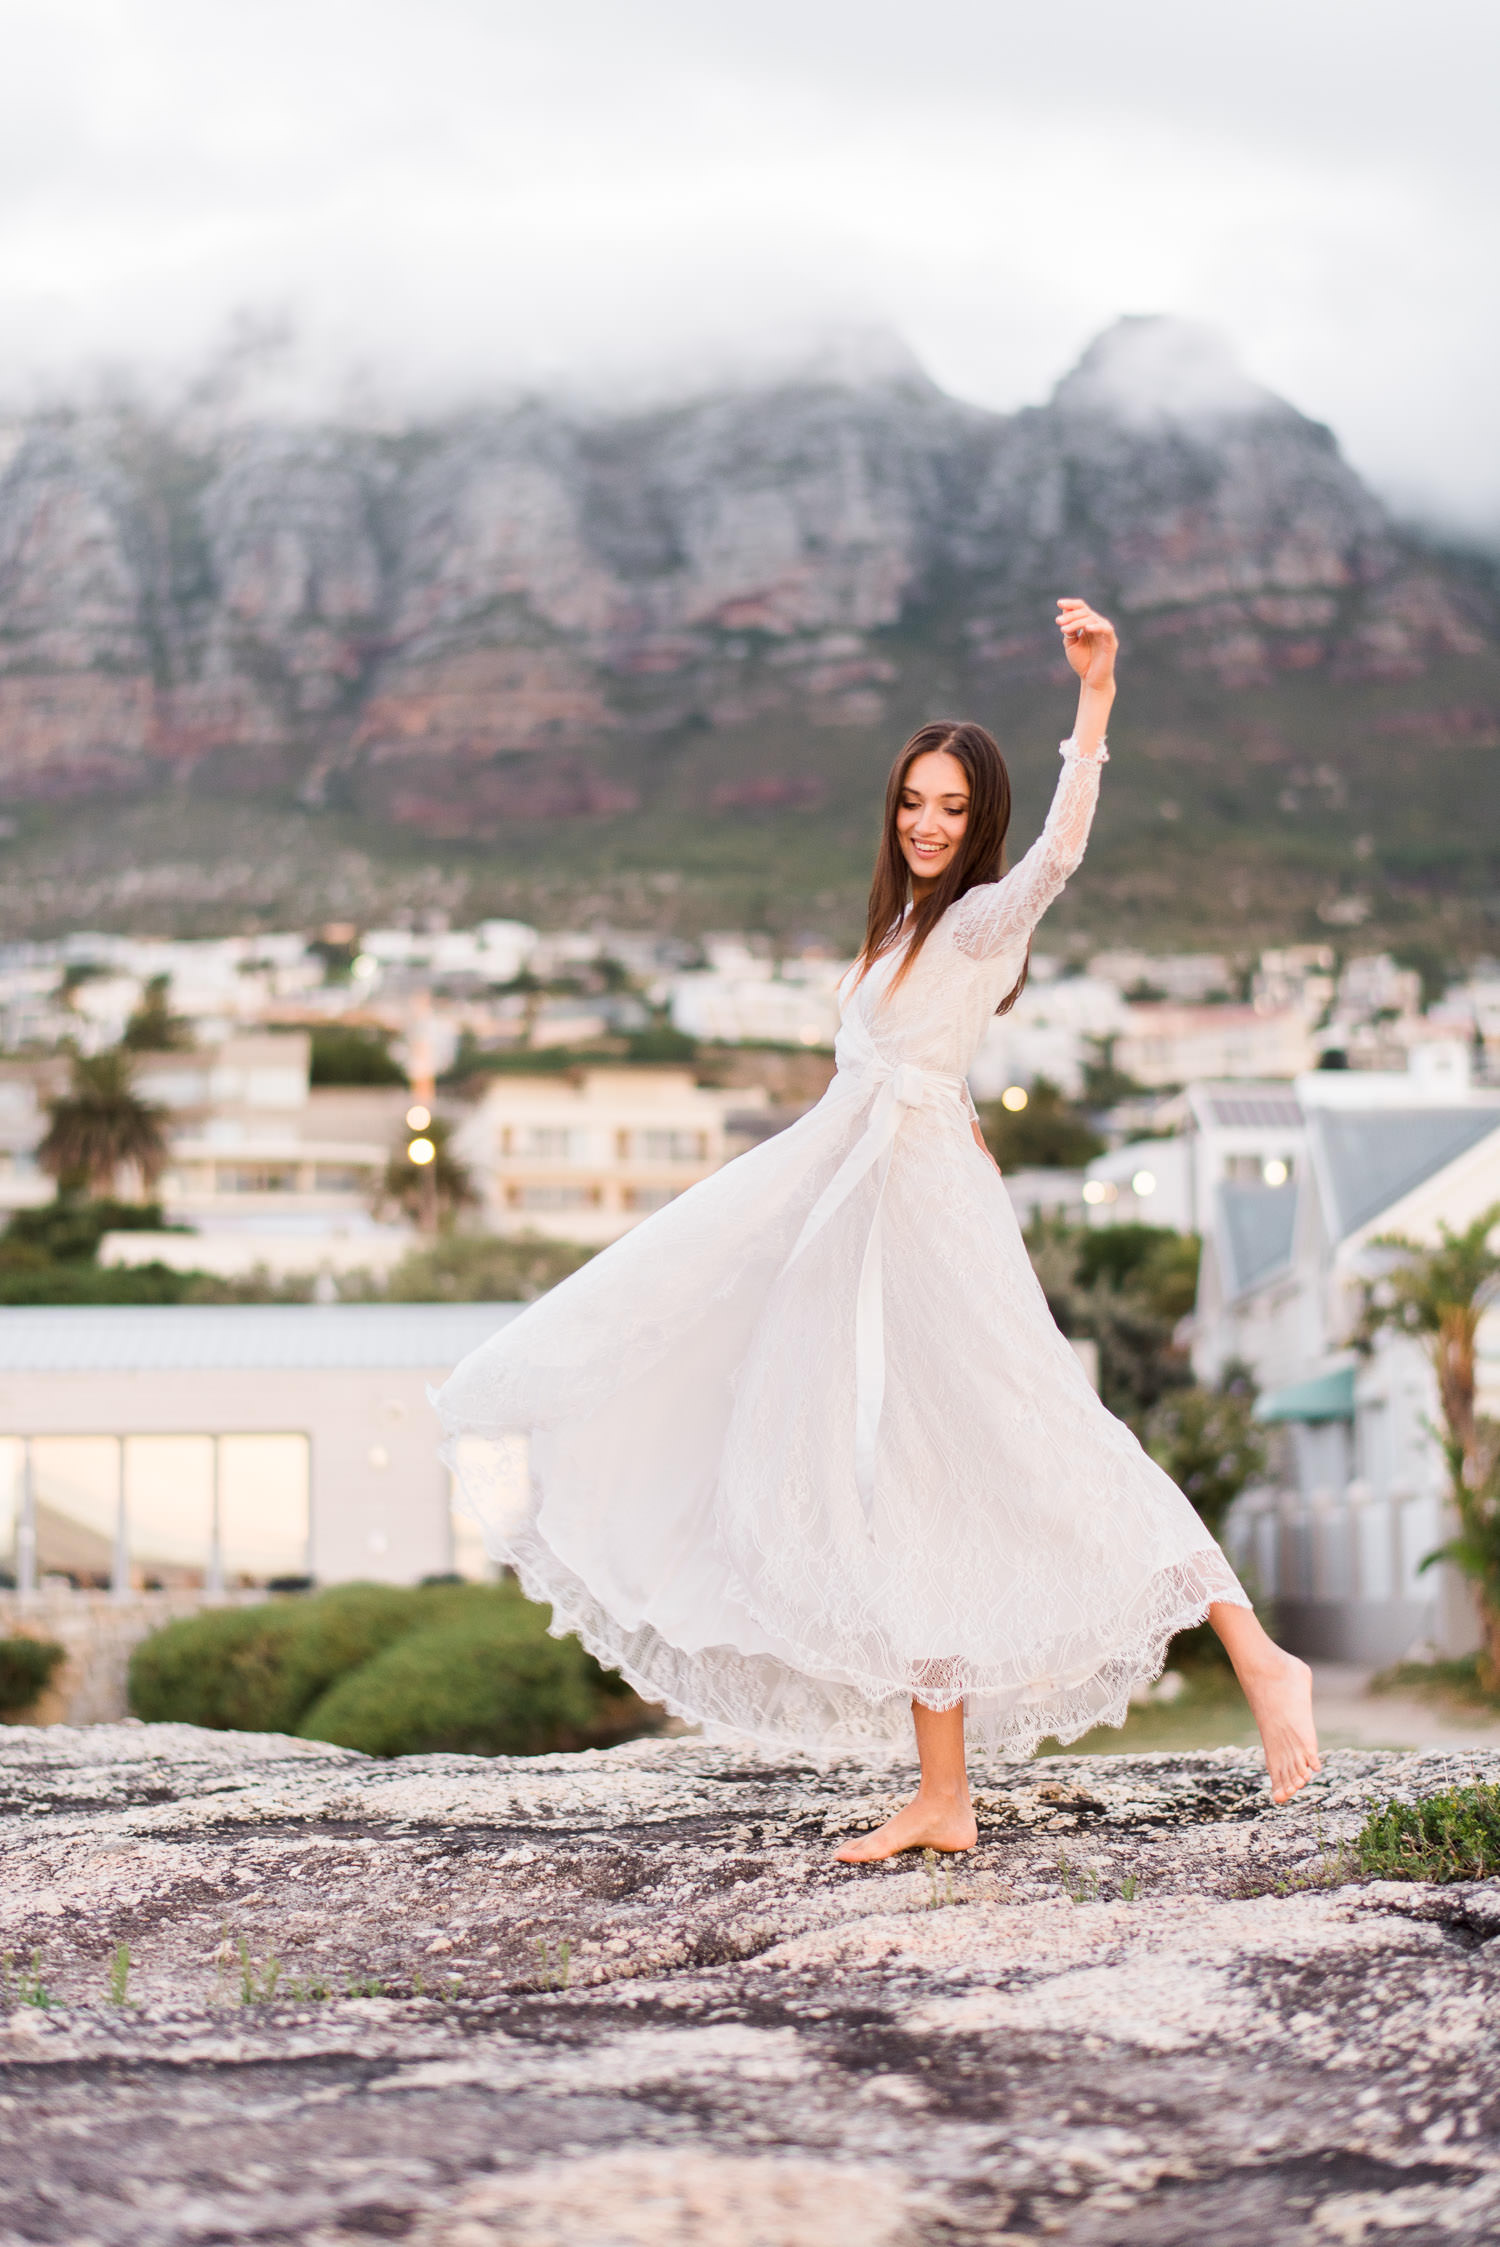 Julie dances in a Catalfo dress at sunset in Camps Bay engagement session in Cape Town